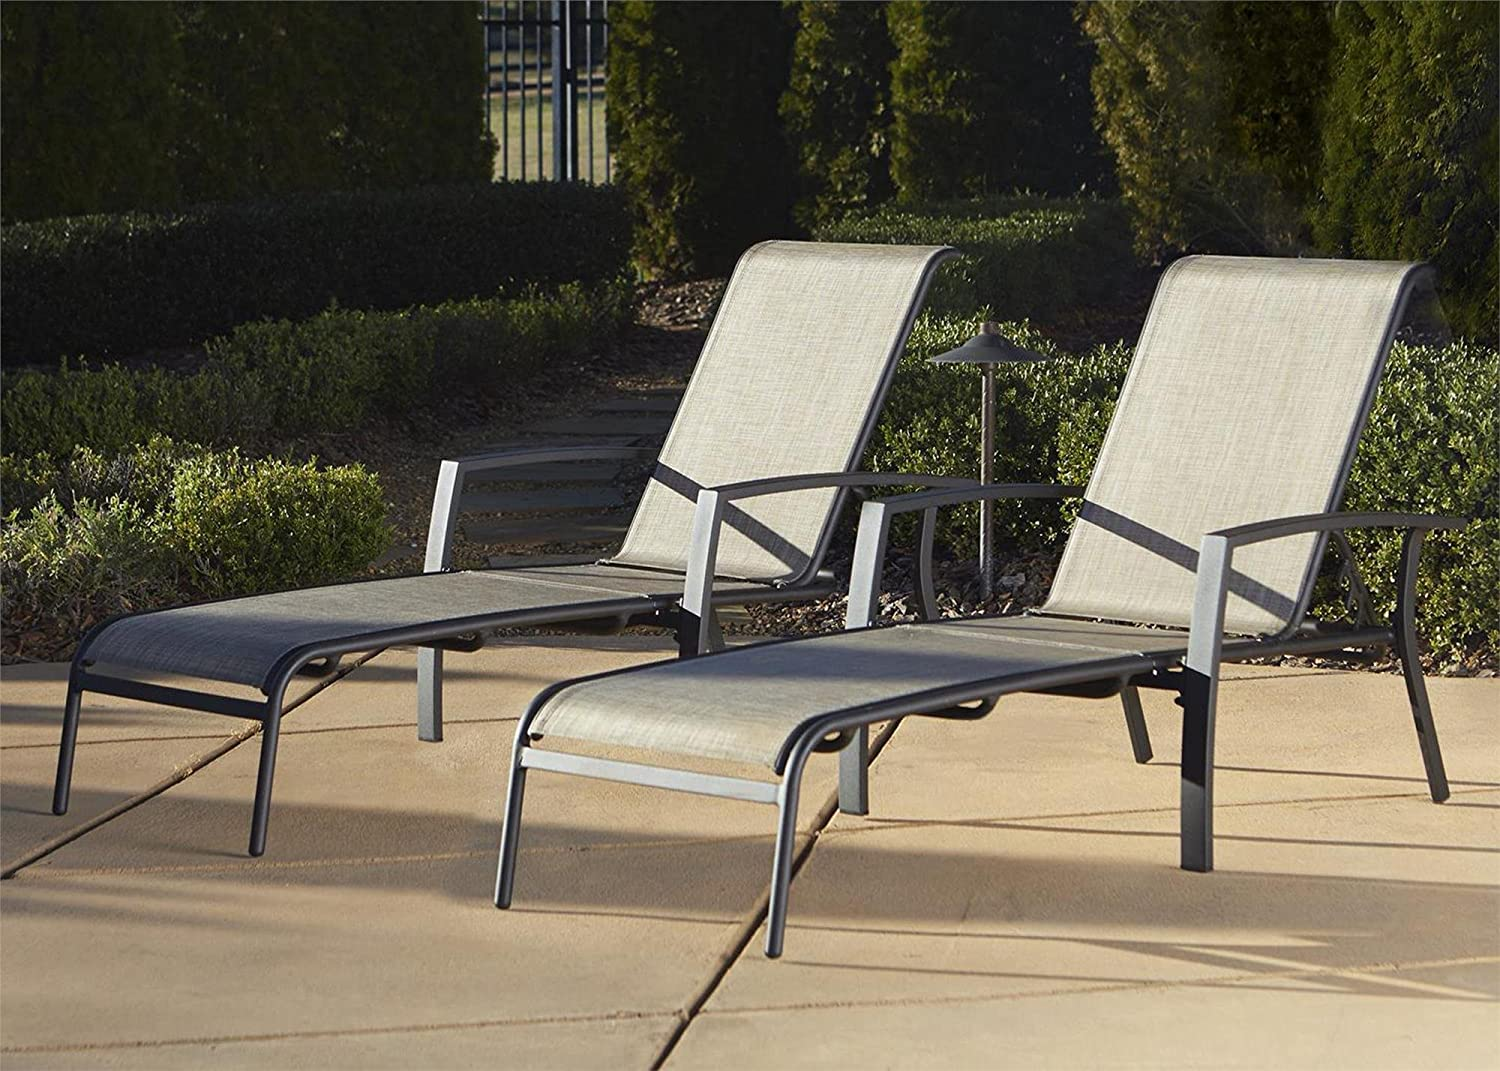 Amazon.com Cosco Outdoor Chaise Lounge Chair Adjustable 2 Pack Dark Brown Garden u0026 Outdoor : chaise lounge chair outdoor - Cheerinfomania.Com